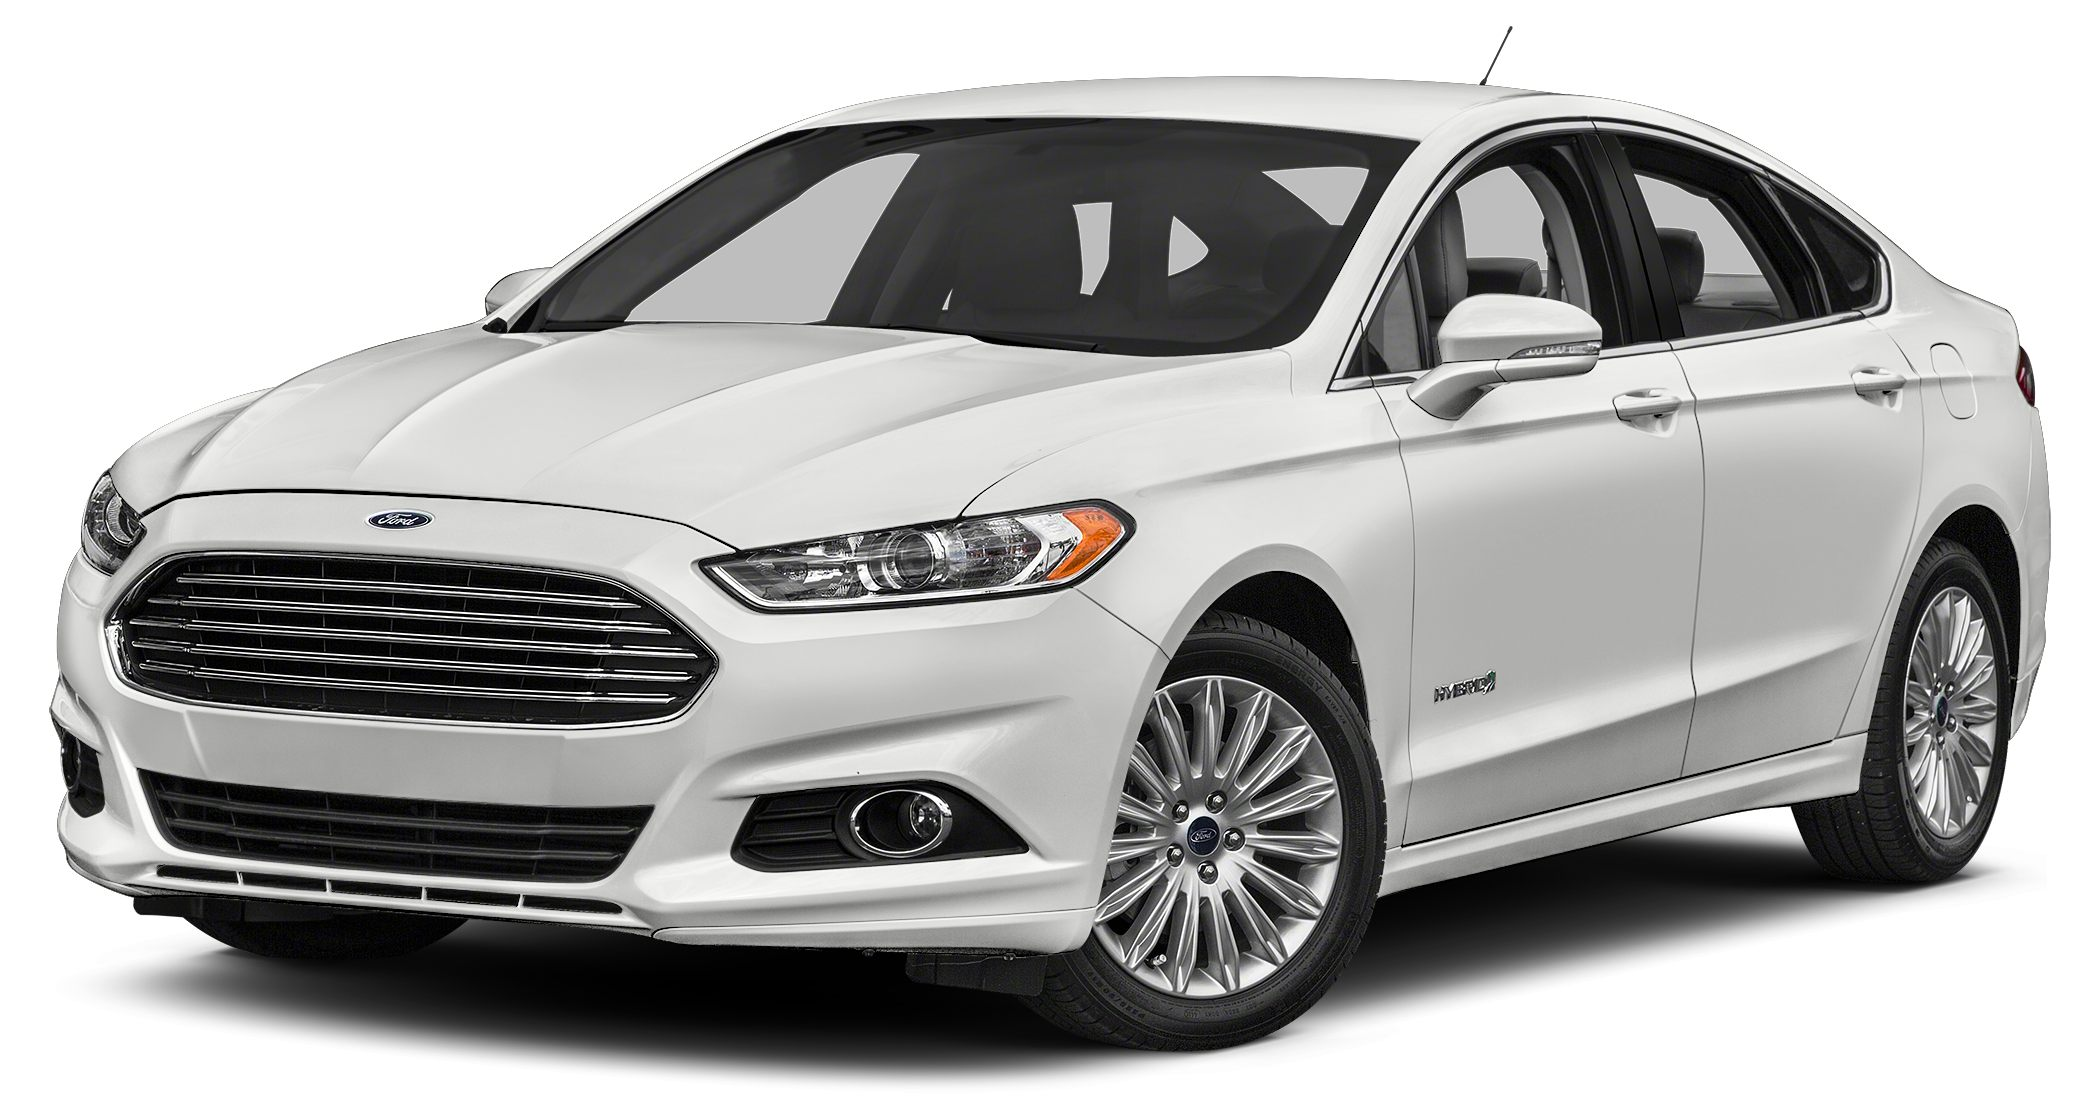 2016 Ford Fusion Hybrid S The Ford Fusion has the upscale style and front grille that resemble hig